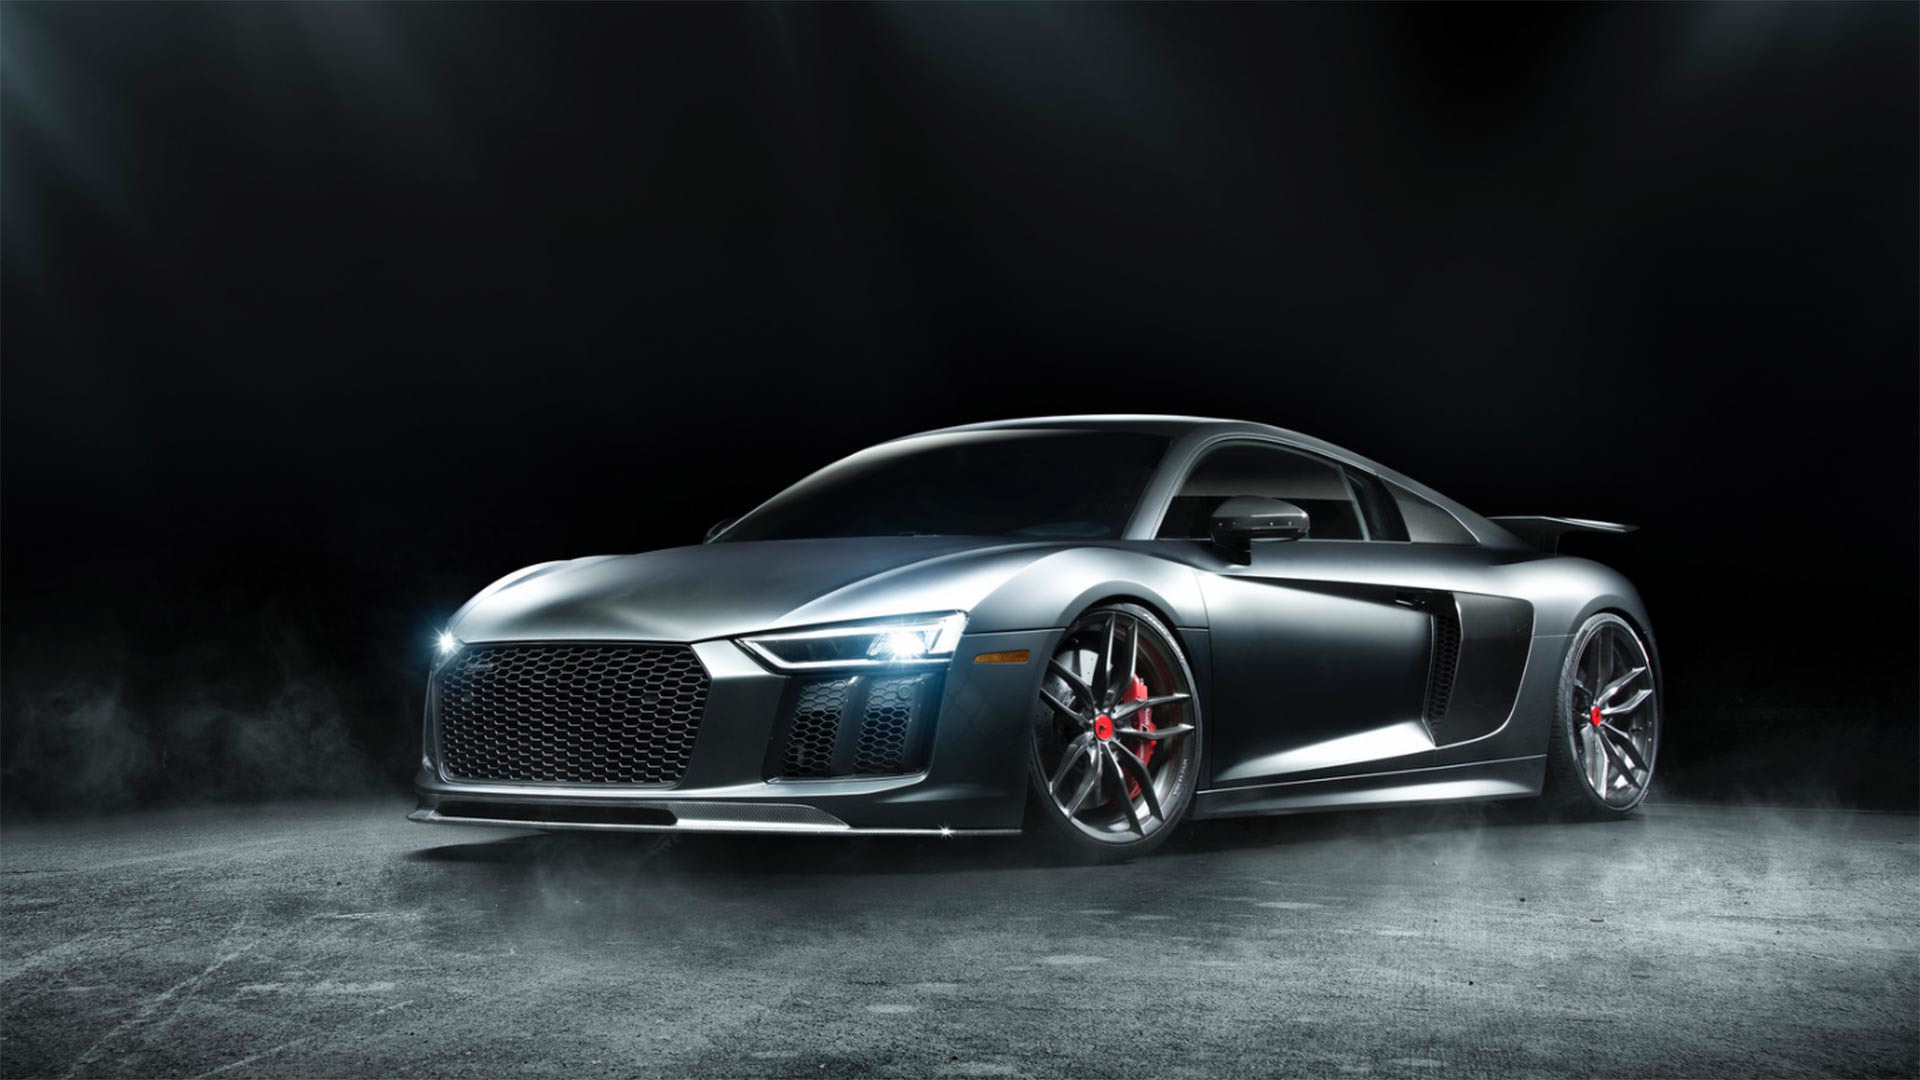 Audi Body Kit By Vorsteiner Keeps Your Supercar Looking Special